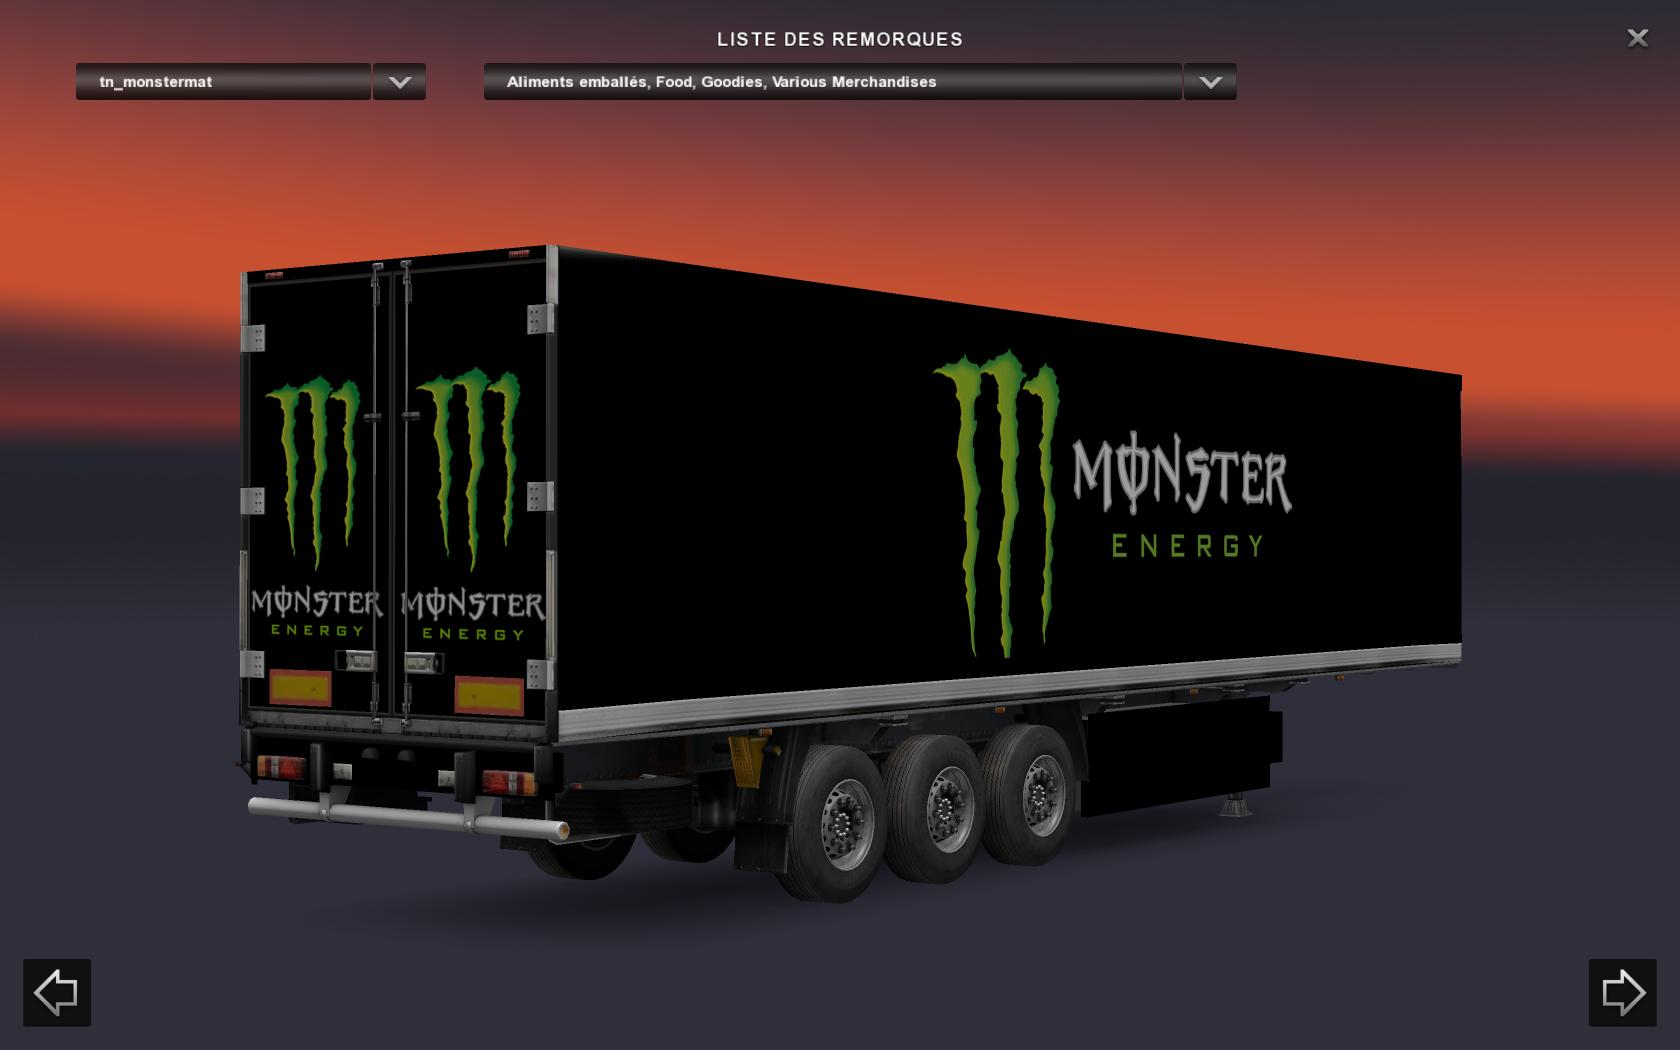 monster-energy-trailer-standalone-1-0_1